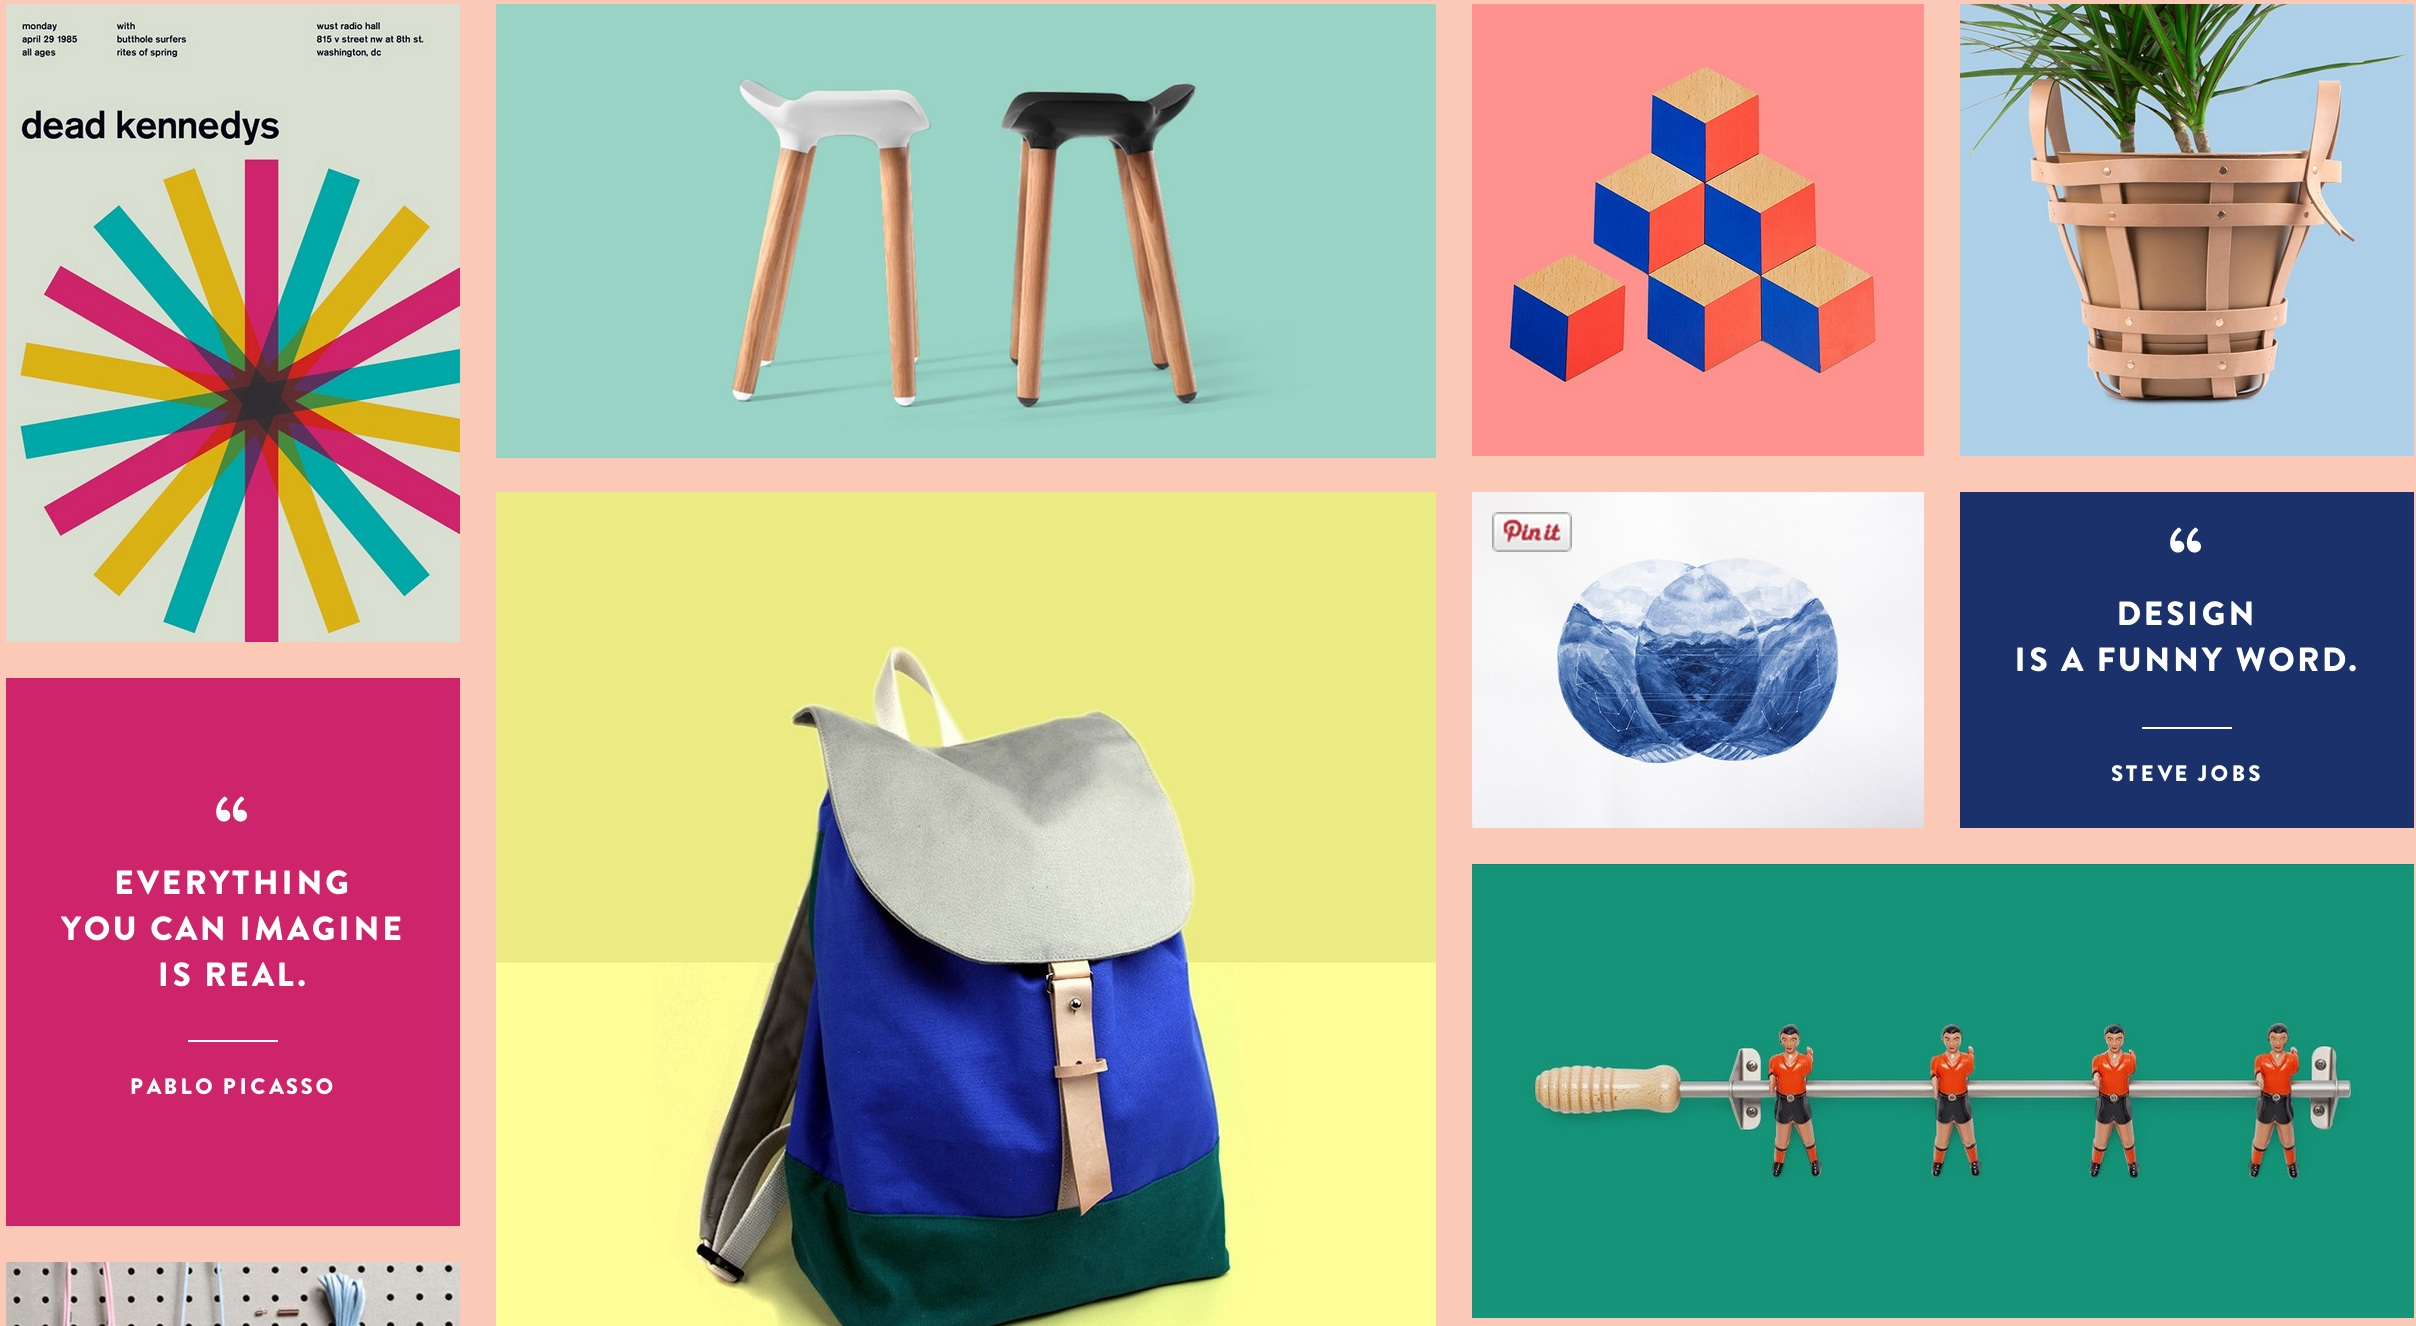 Bezar: The new members-only marketplace for rabid fans of modern design